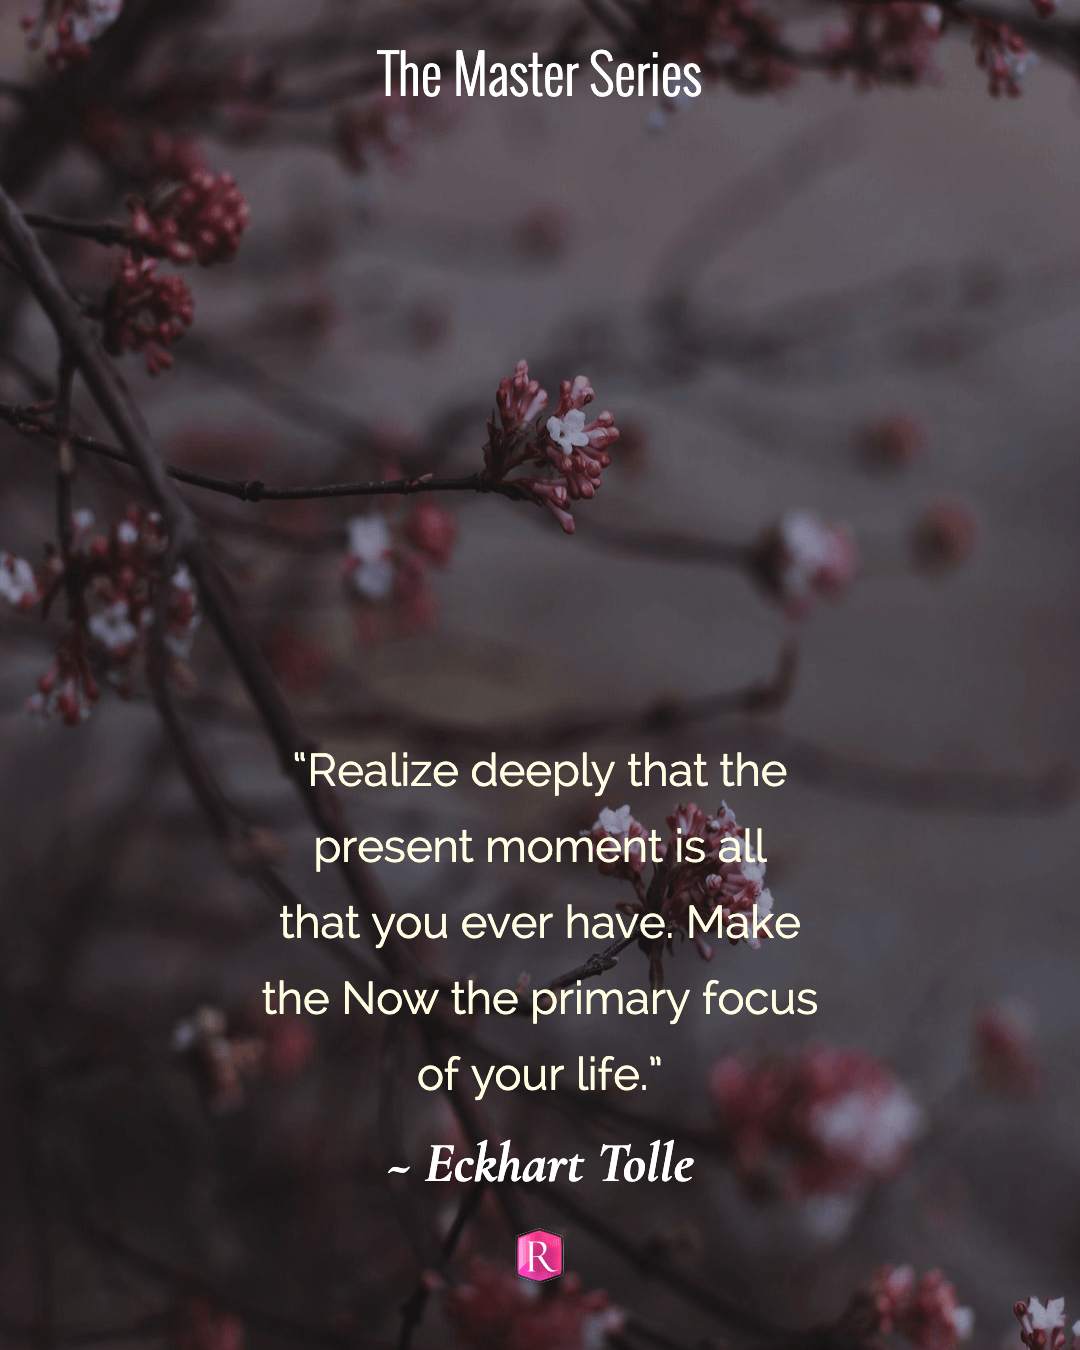 "The master Series from Rochelle L. Cook ""Realize deeply that the present moment is all that you ever have. Make the Now the primary focus of your life."" Eckhart Tolle"